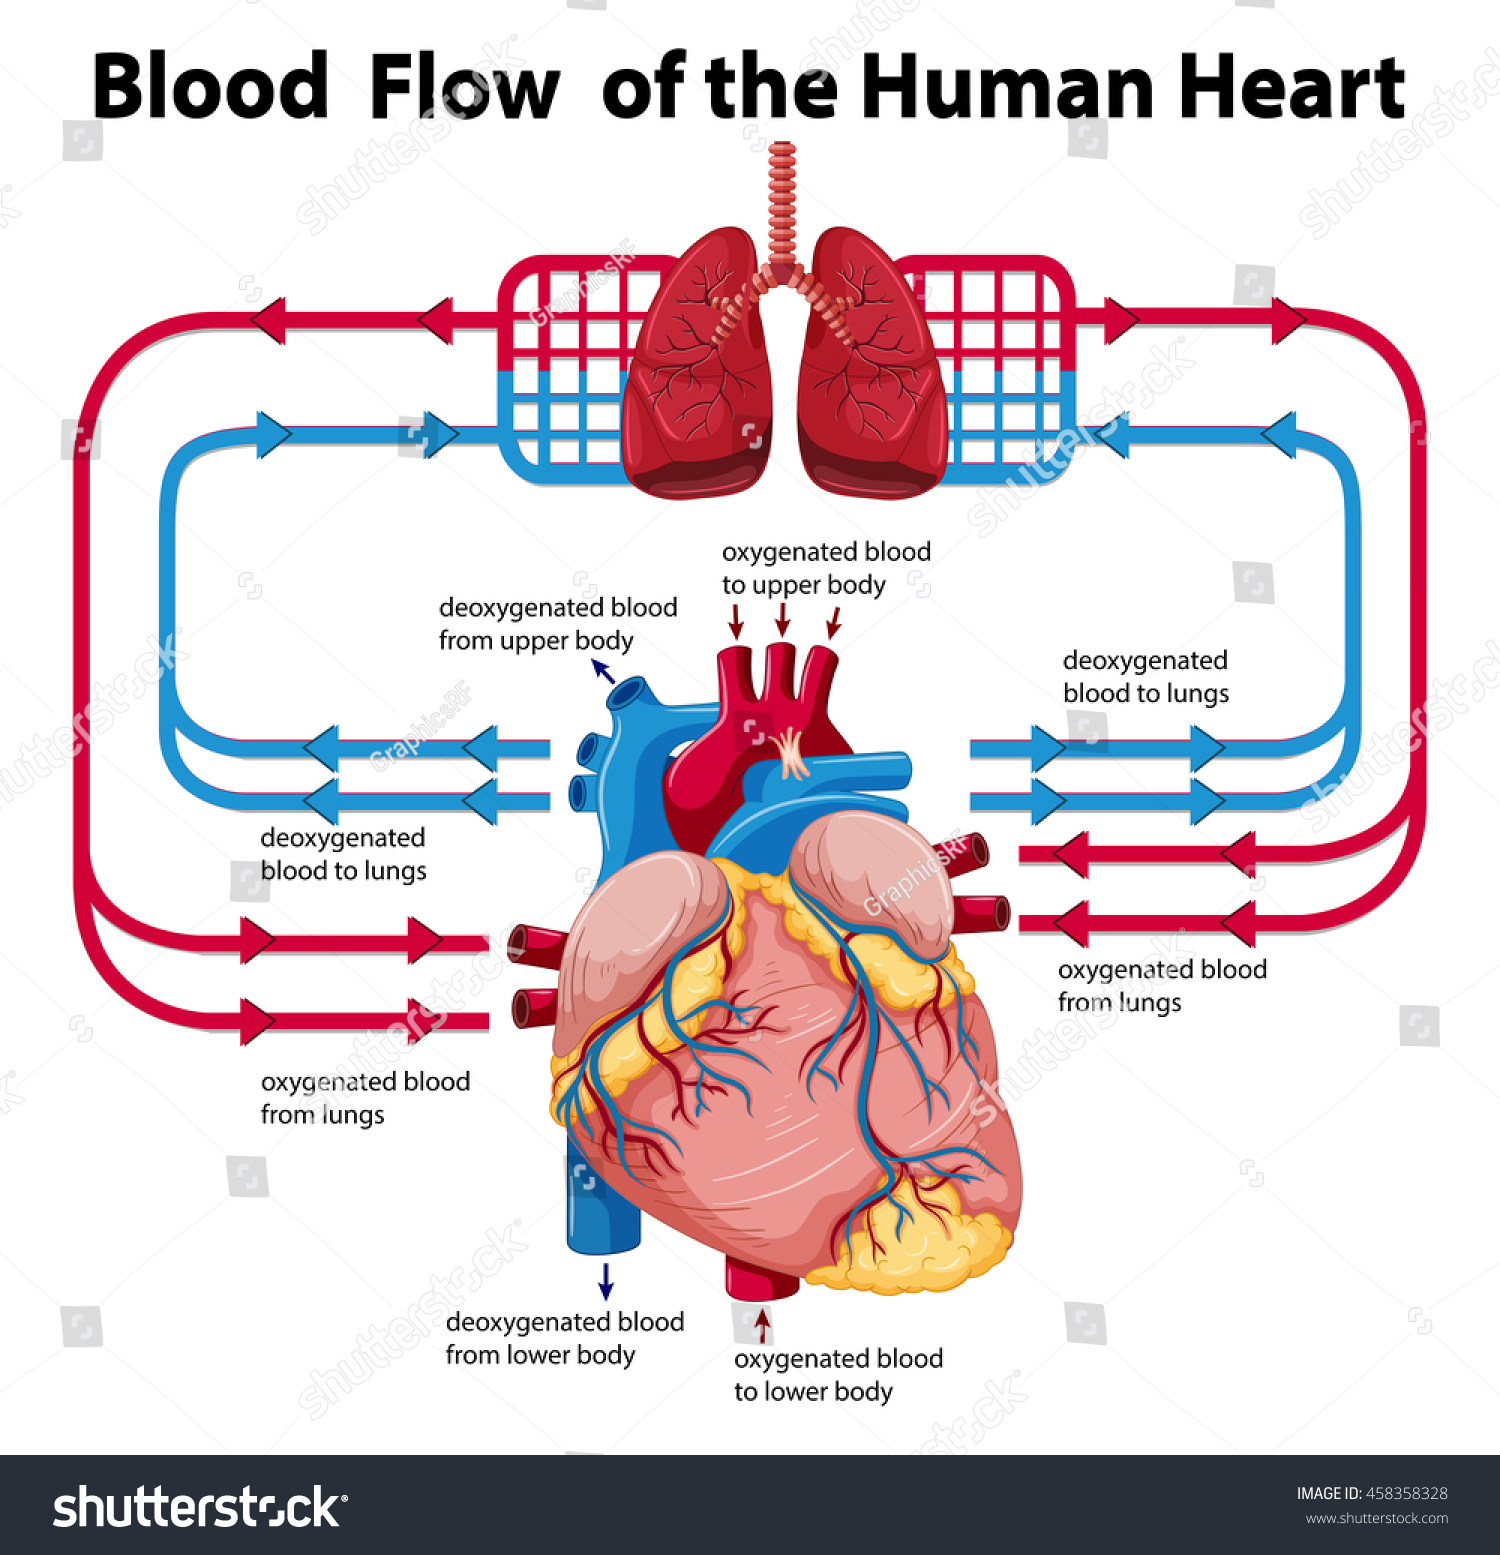 Diagram showing blood flow human heart stock vector 458358328 diagram showing blood flow of human heart illustration pooptronica